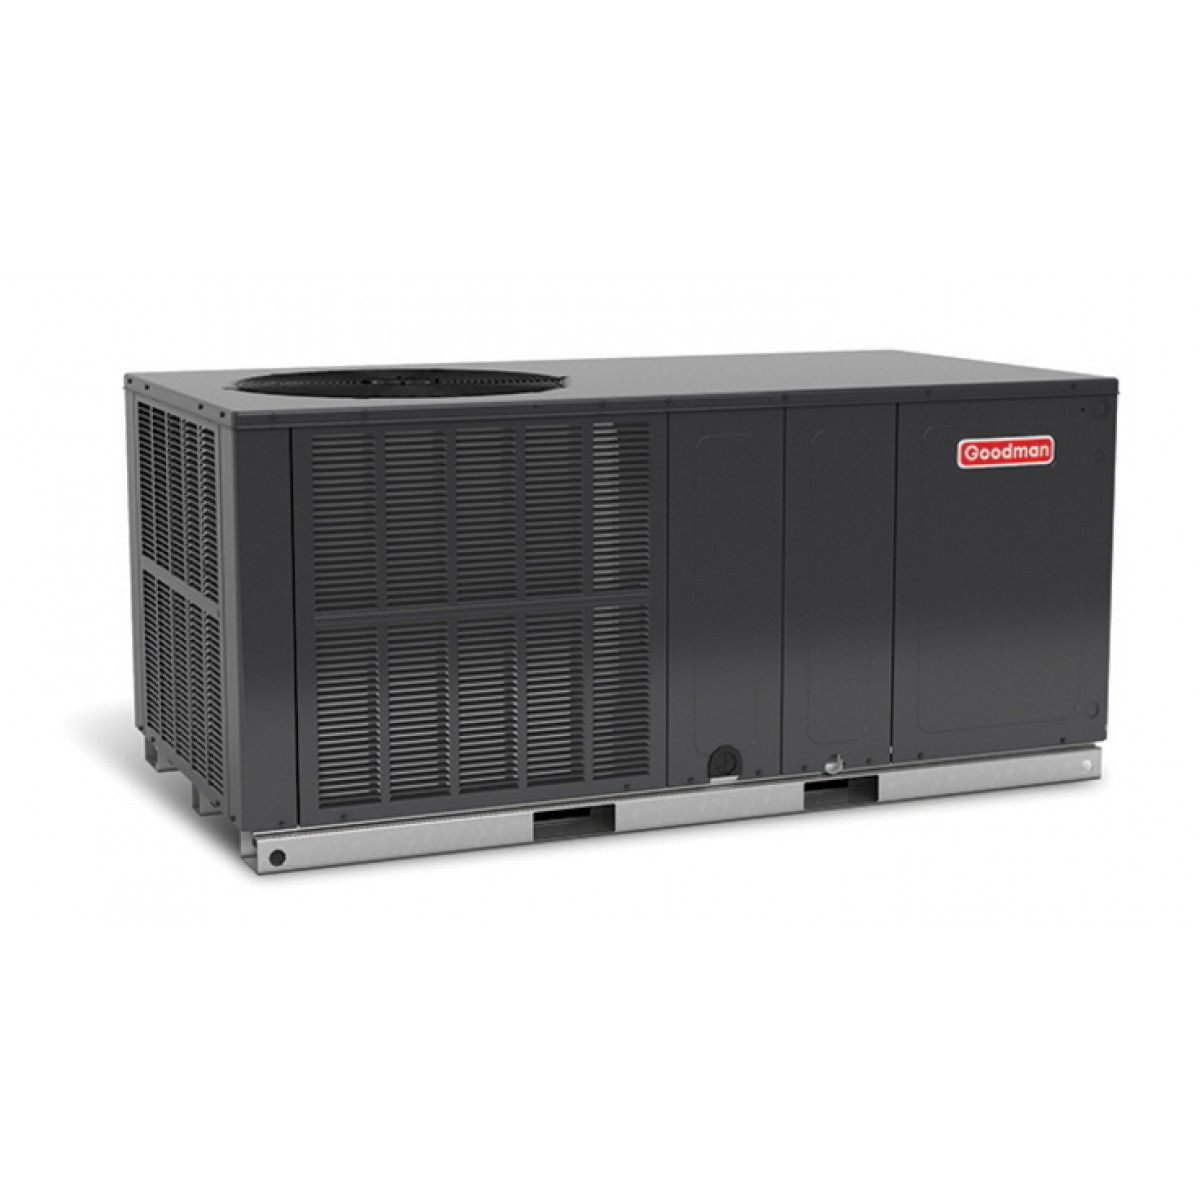 Goodman 3 5 Ton 16 Seer Single Stage Heat Pump Package